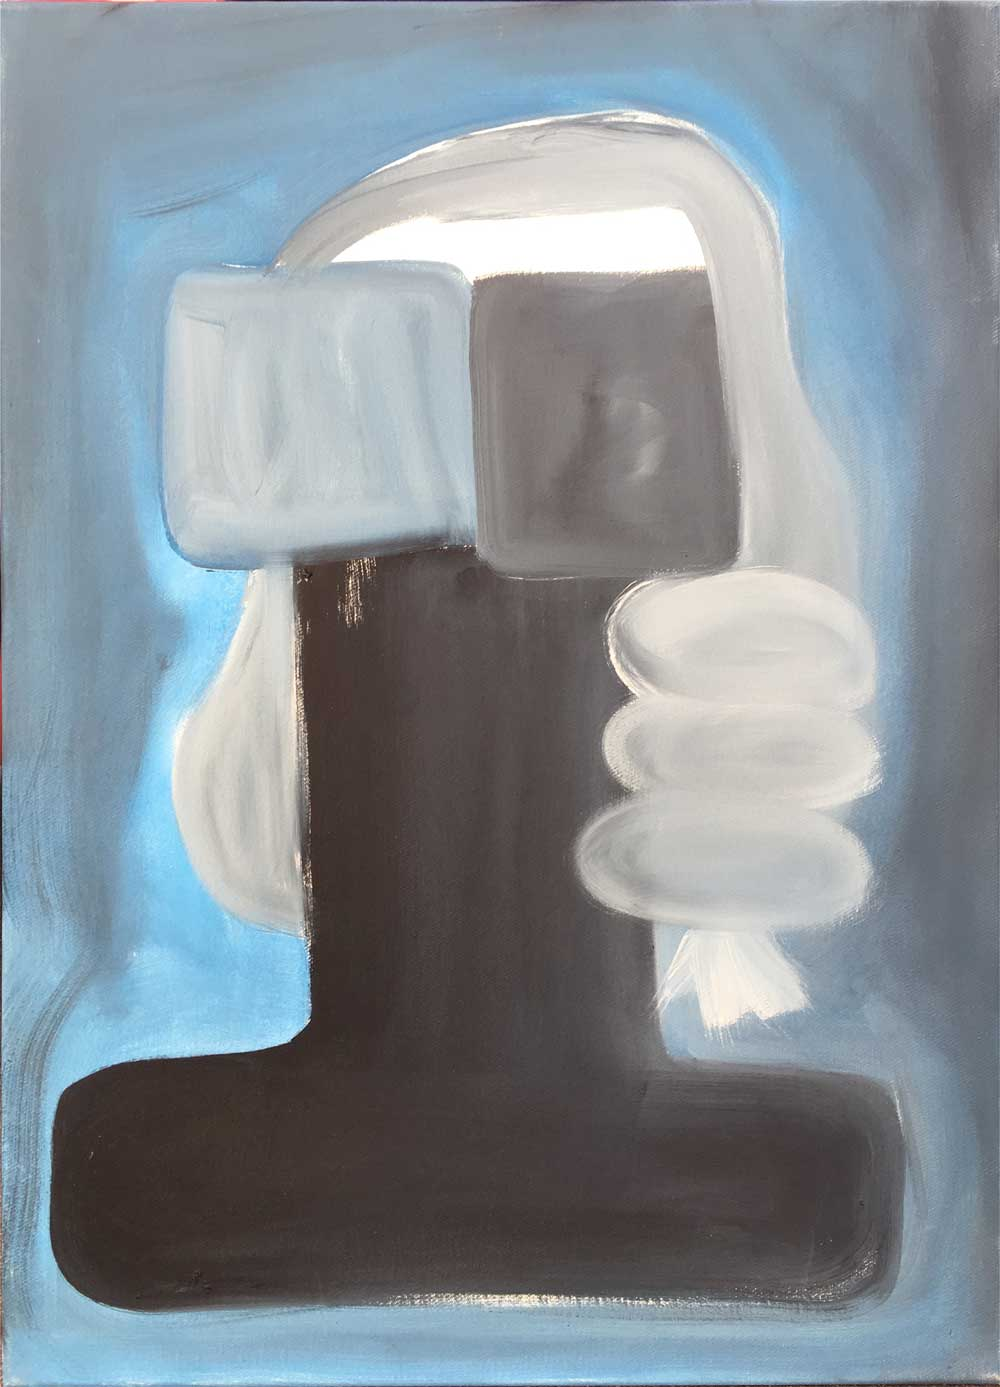 36. Ronald Kodritsch - Büste (Blau)2013Öl auf Leinwand66 x 47cmThanx to all for having supported solidarity matters ️